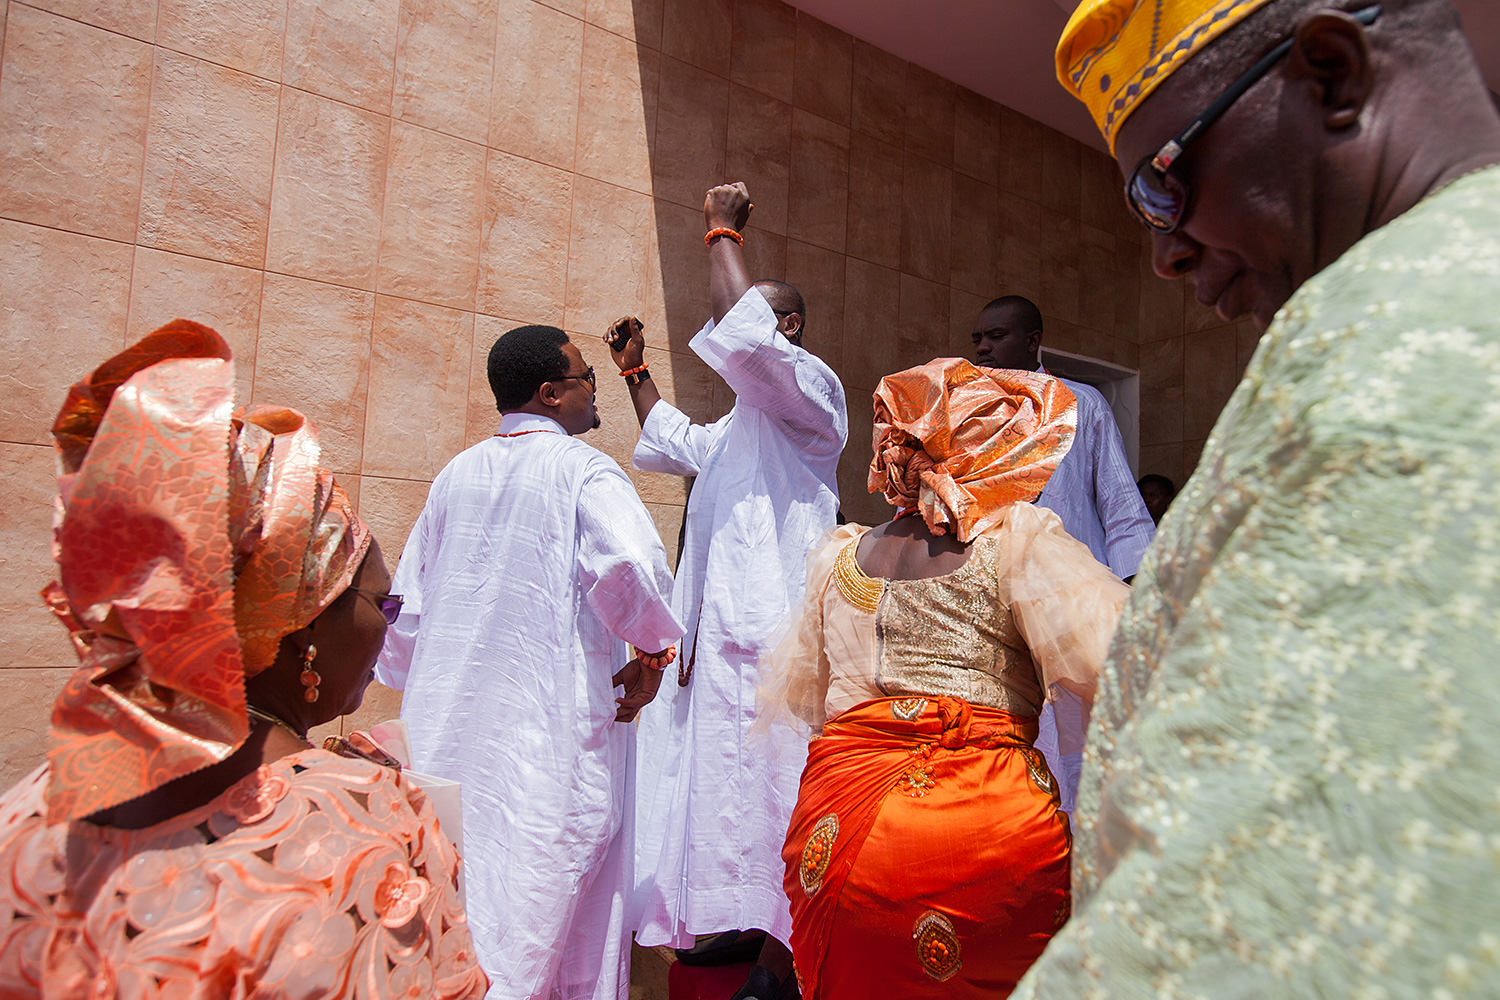 Nigerian wedding05.jpg